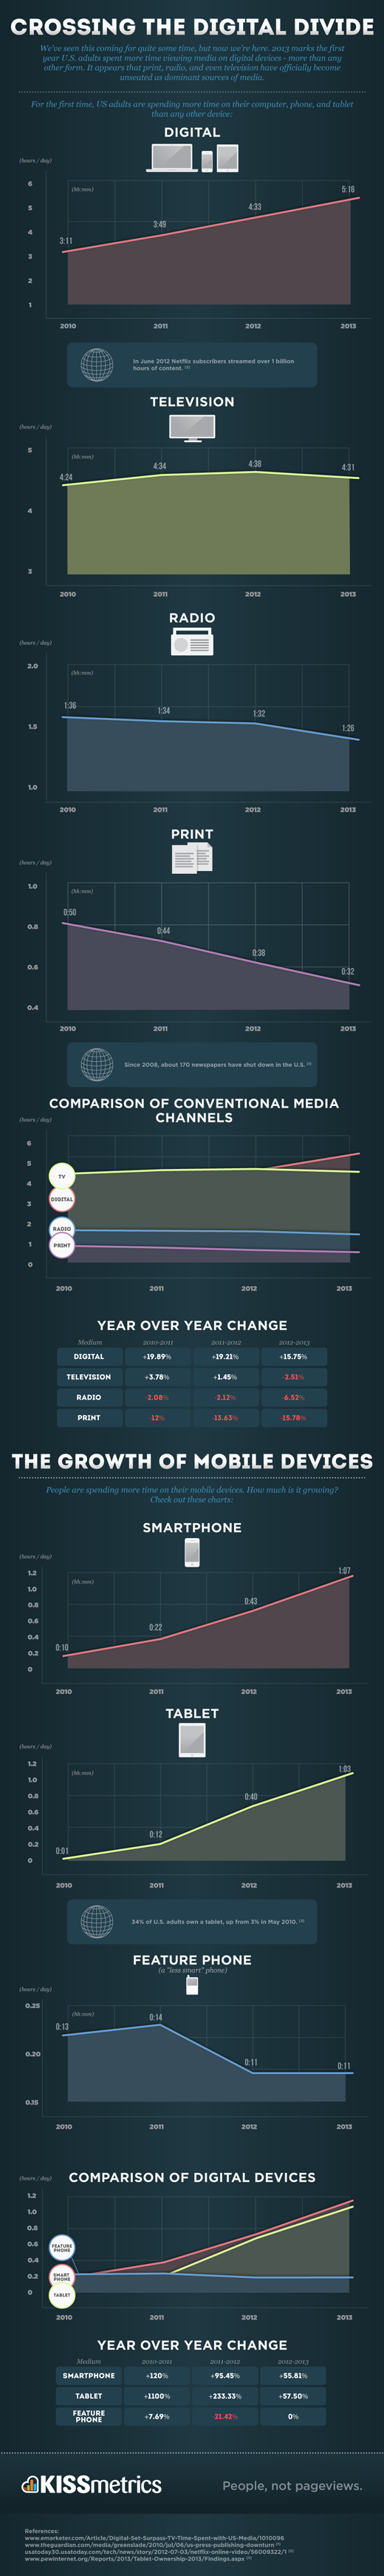 Crossing the Digital Divide - Infographic